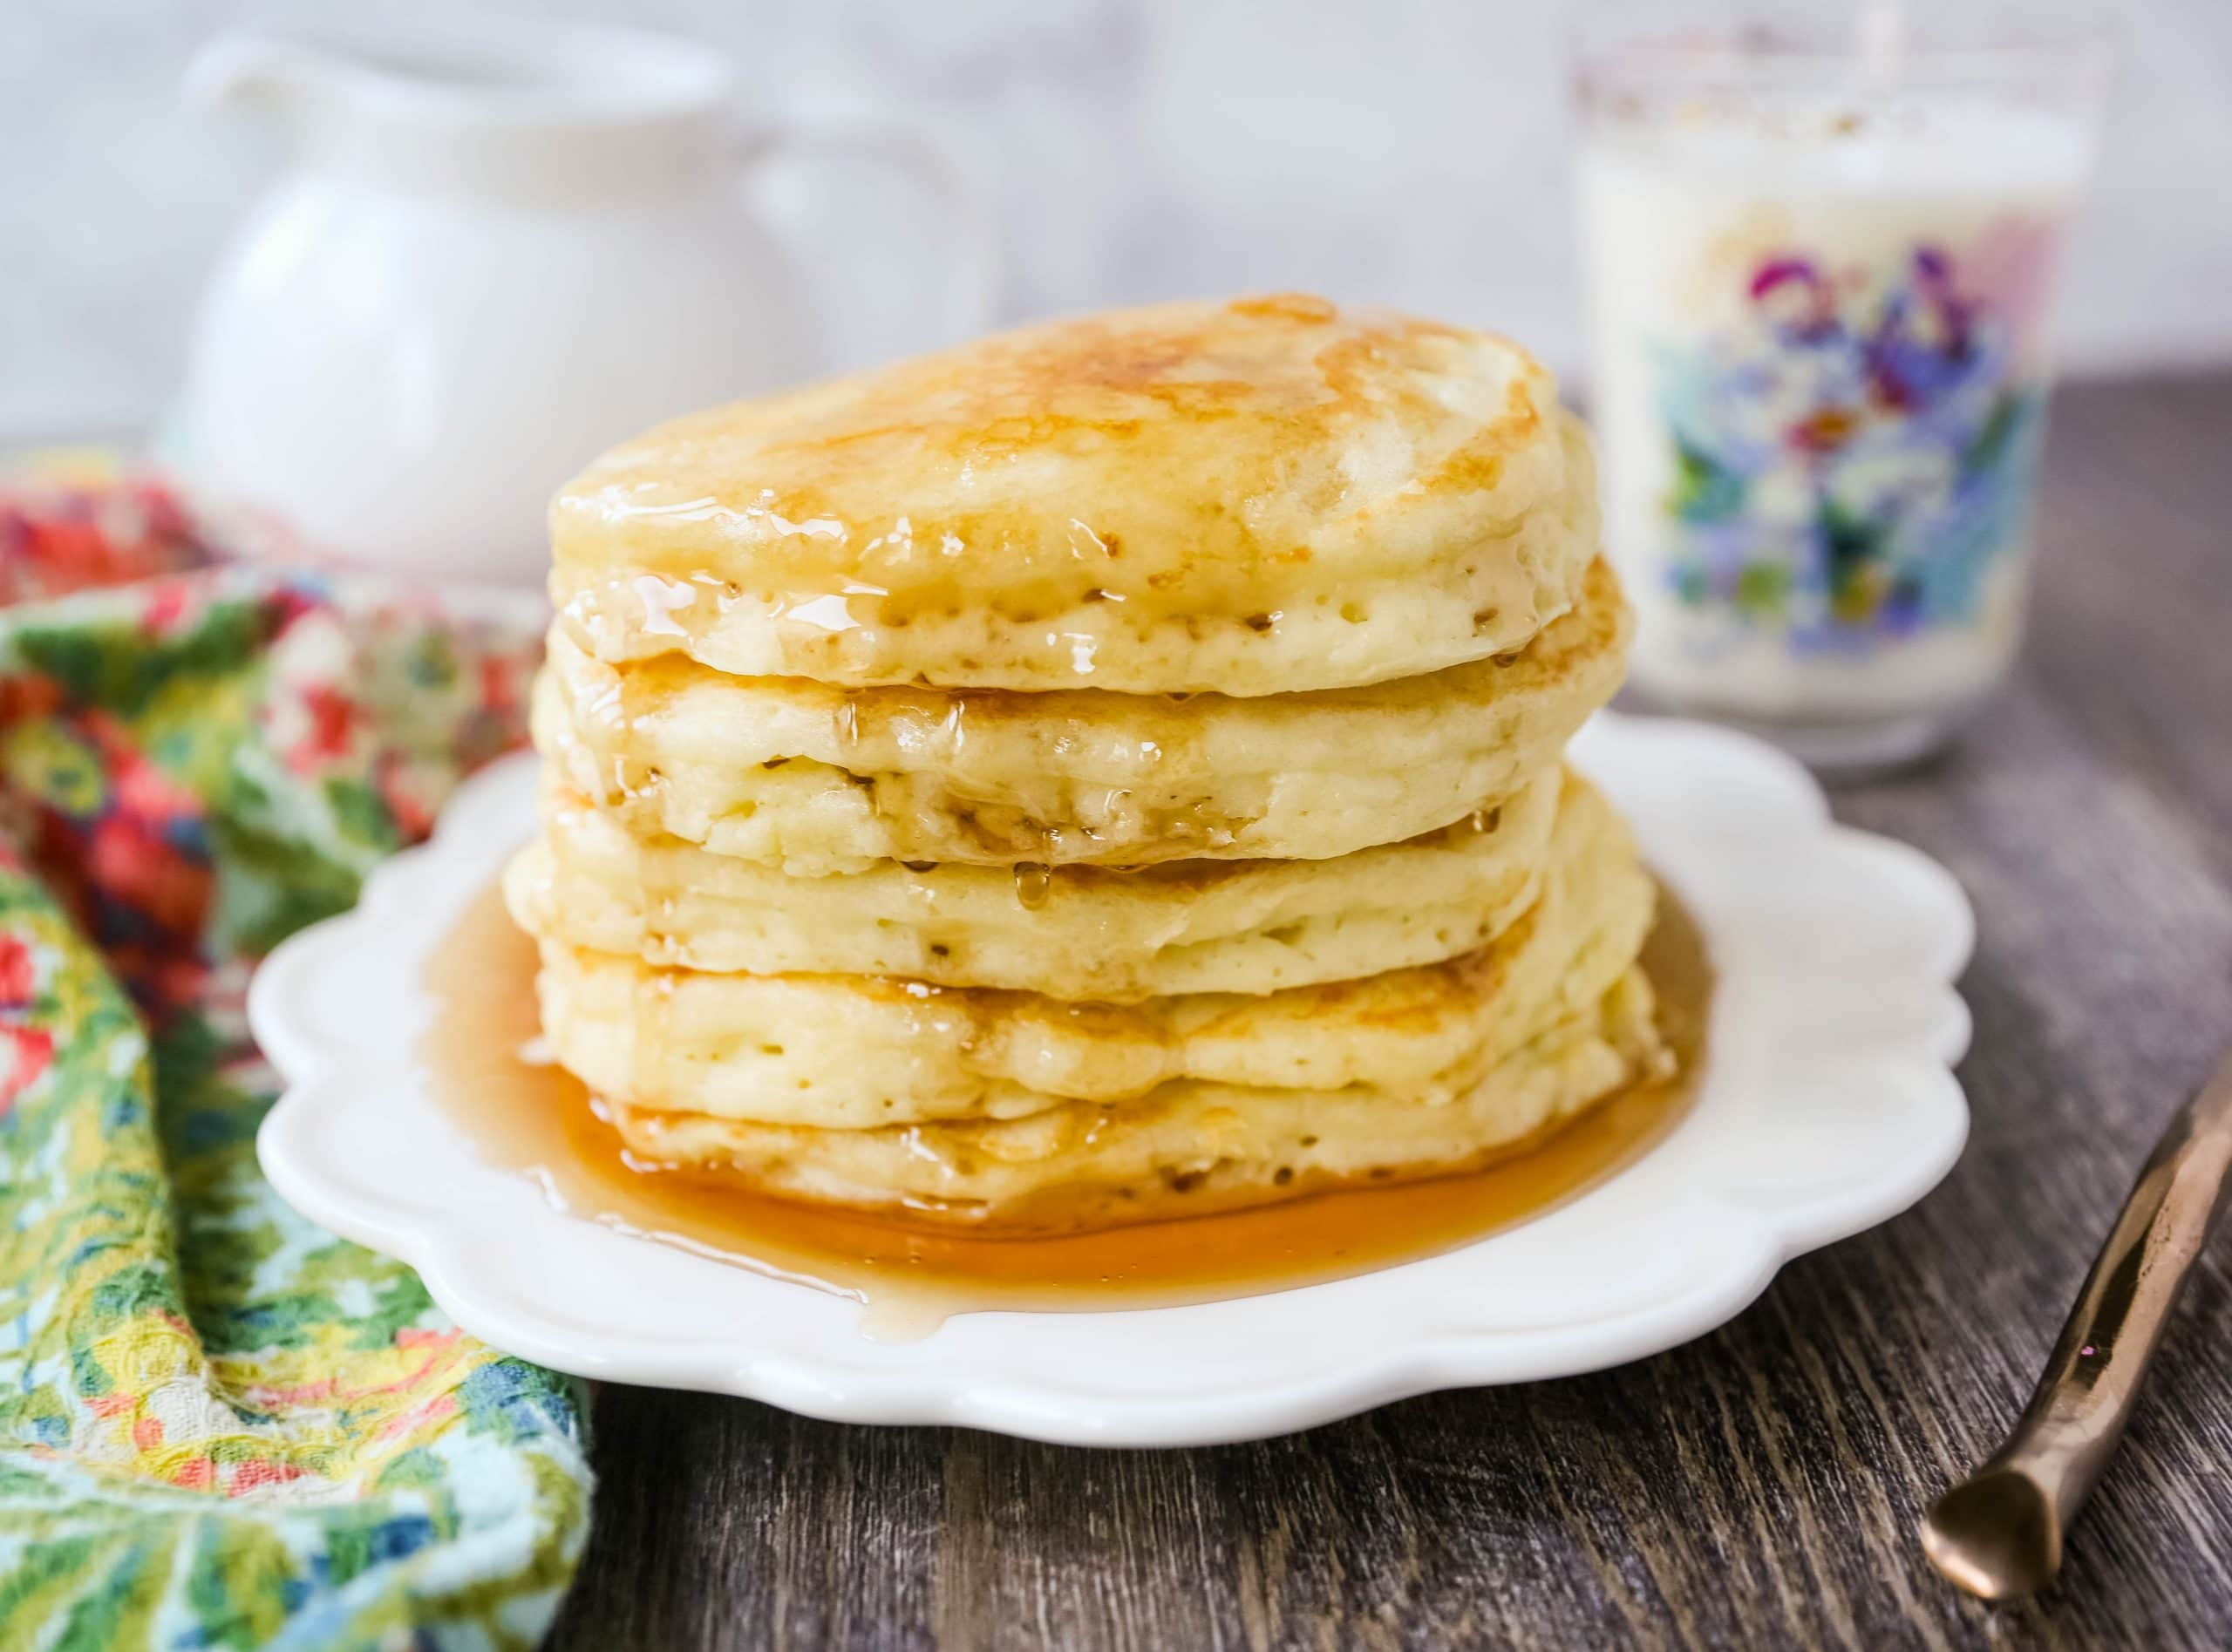 The Best Pancake Recipe. Light and fluffy buttermilk pancakes with a secret ingredient to make it extra tender. This is the only pancake recipe you will ever need! www.modernhoney.com #pancakes #pancake #breakfast #brunch